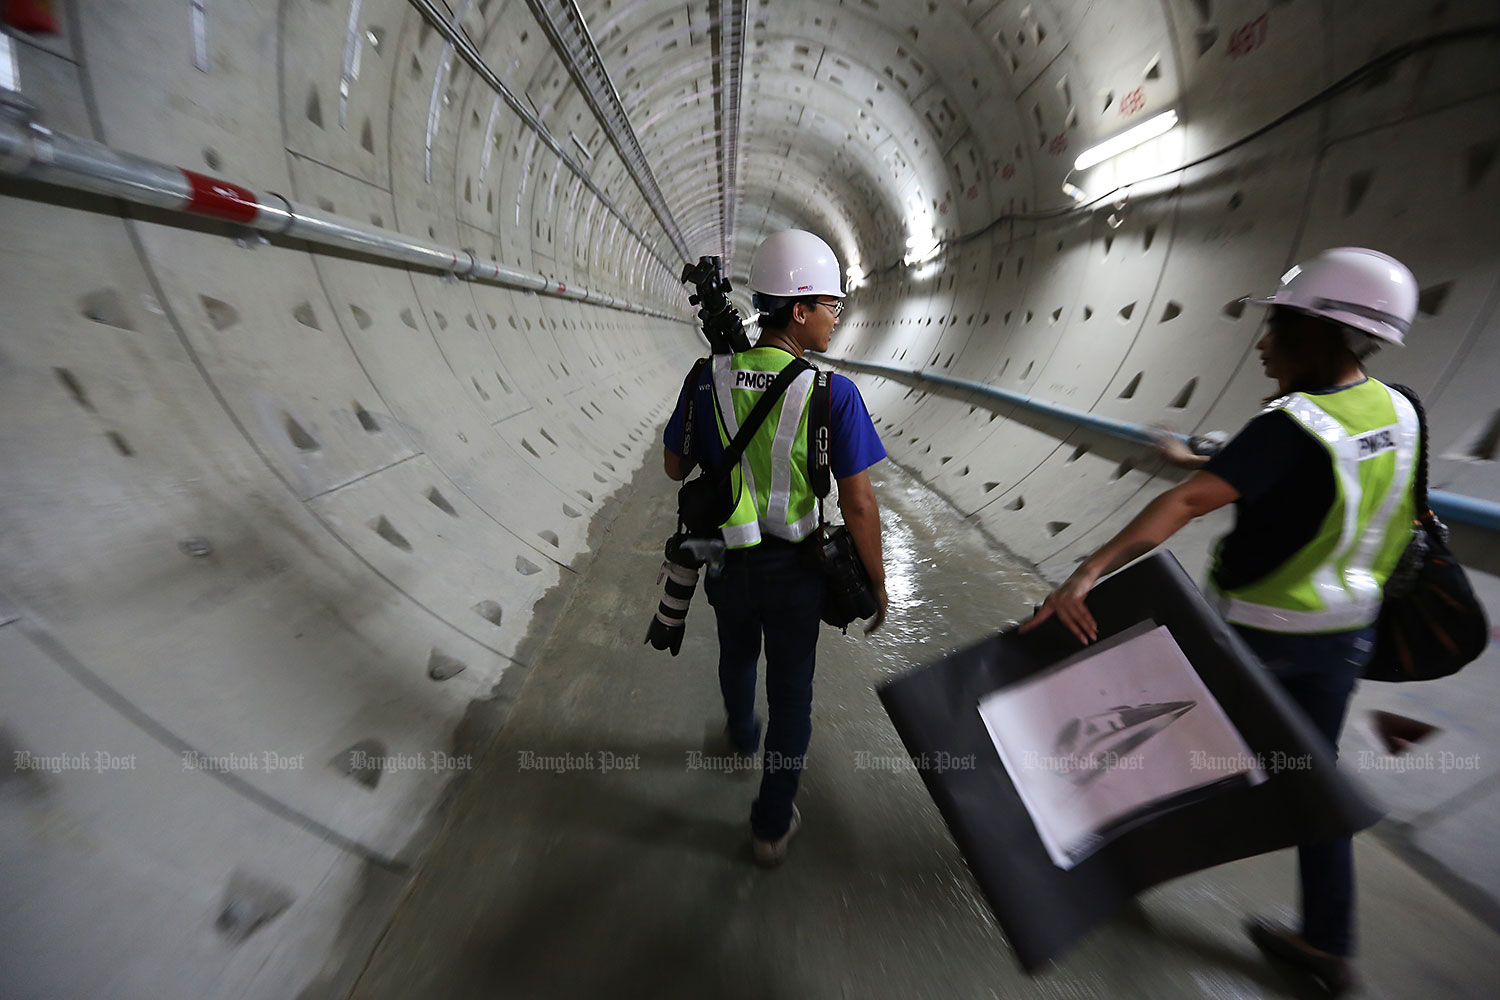 Tubing the river: Engineers inspect a 200-metre tunnel underneath the Chao Phraya River. Part of the 27-kilometre Blue Line extension from Hua Lamphong to Bang Khae, the project was Thailand's first river tunnel. (Bangkok Post file photo)